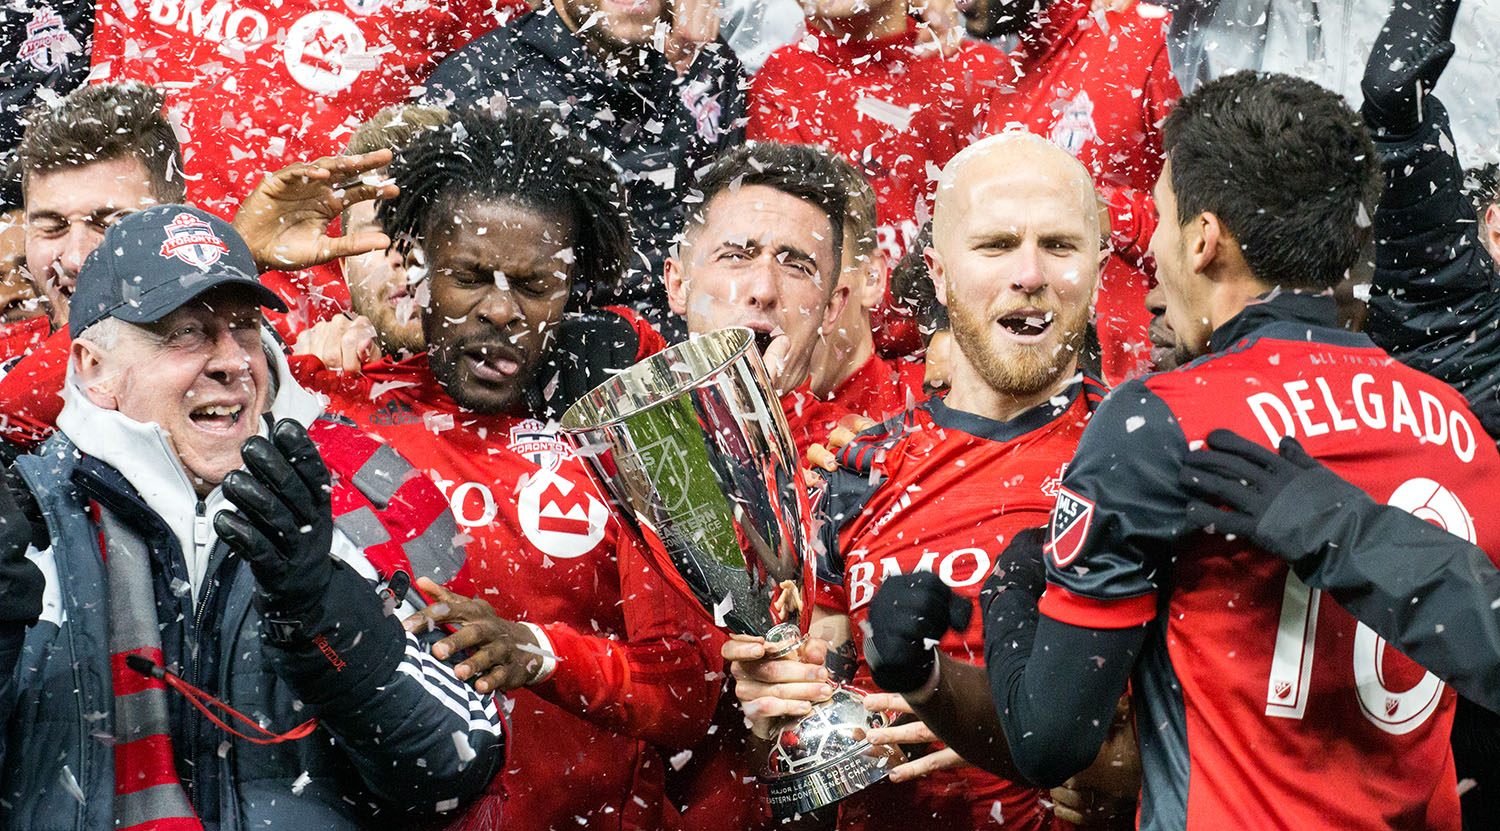 Toronto FC celebrating the advance to the 2017 Major League Soccer Finale with the Eastern Conference trophy.Image by Dennis Marciniak of denMAR Media.